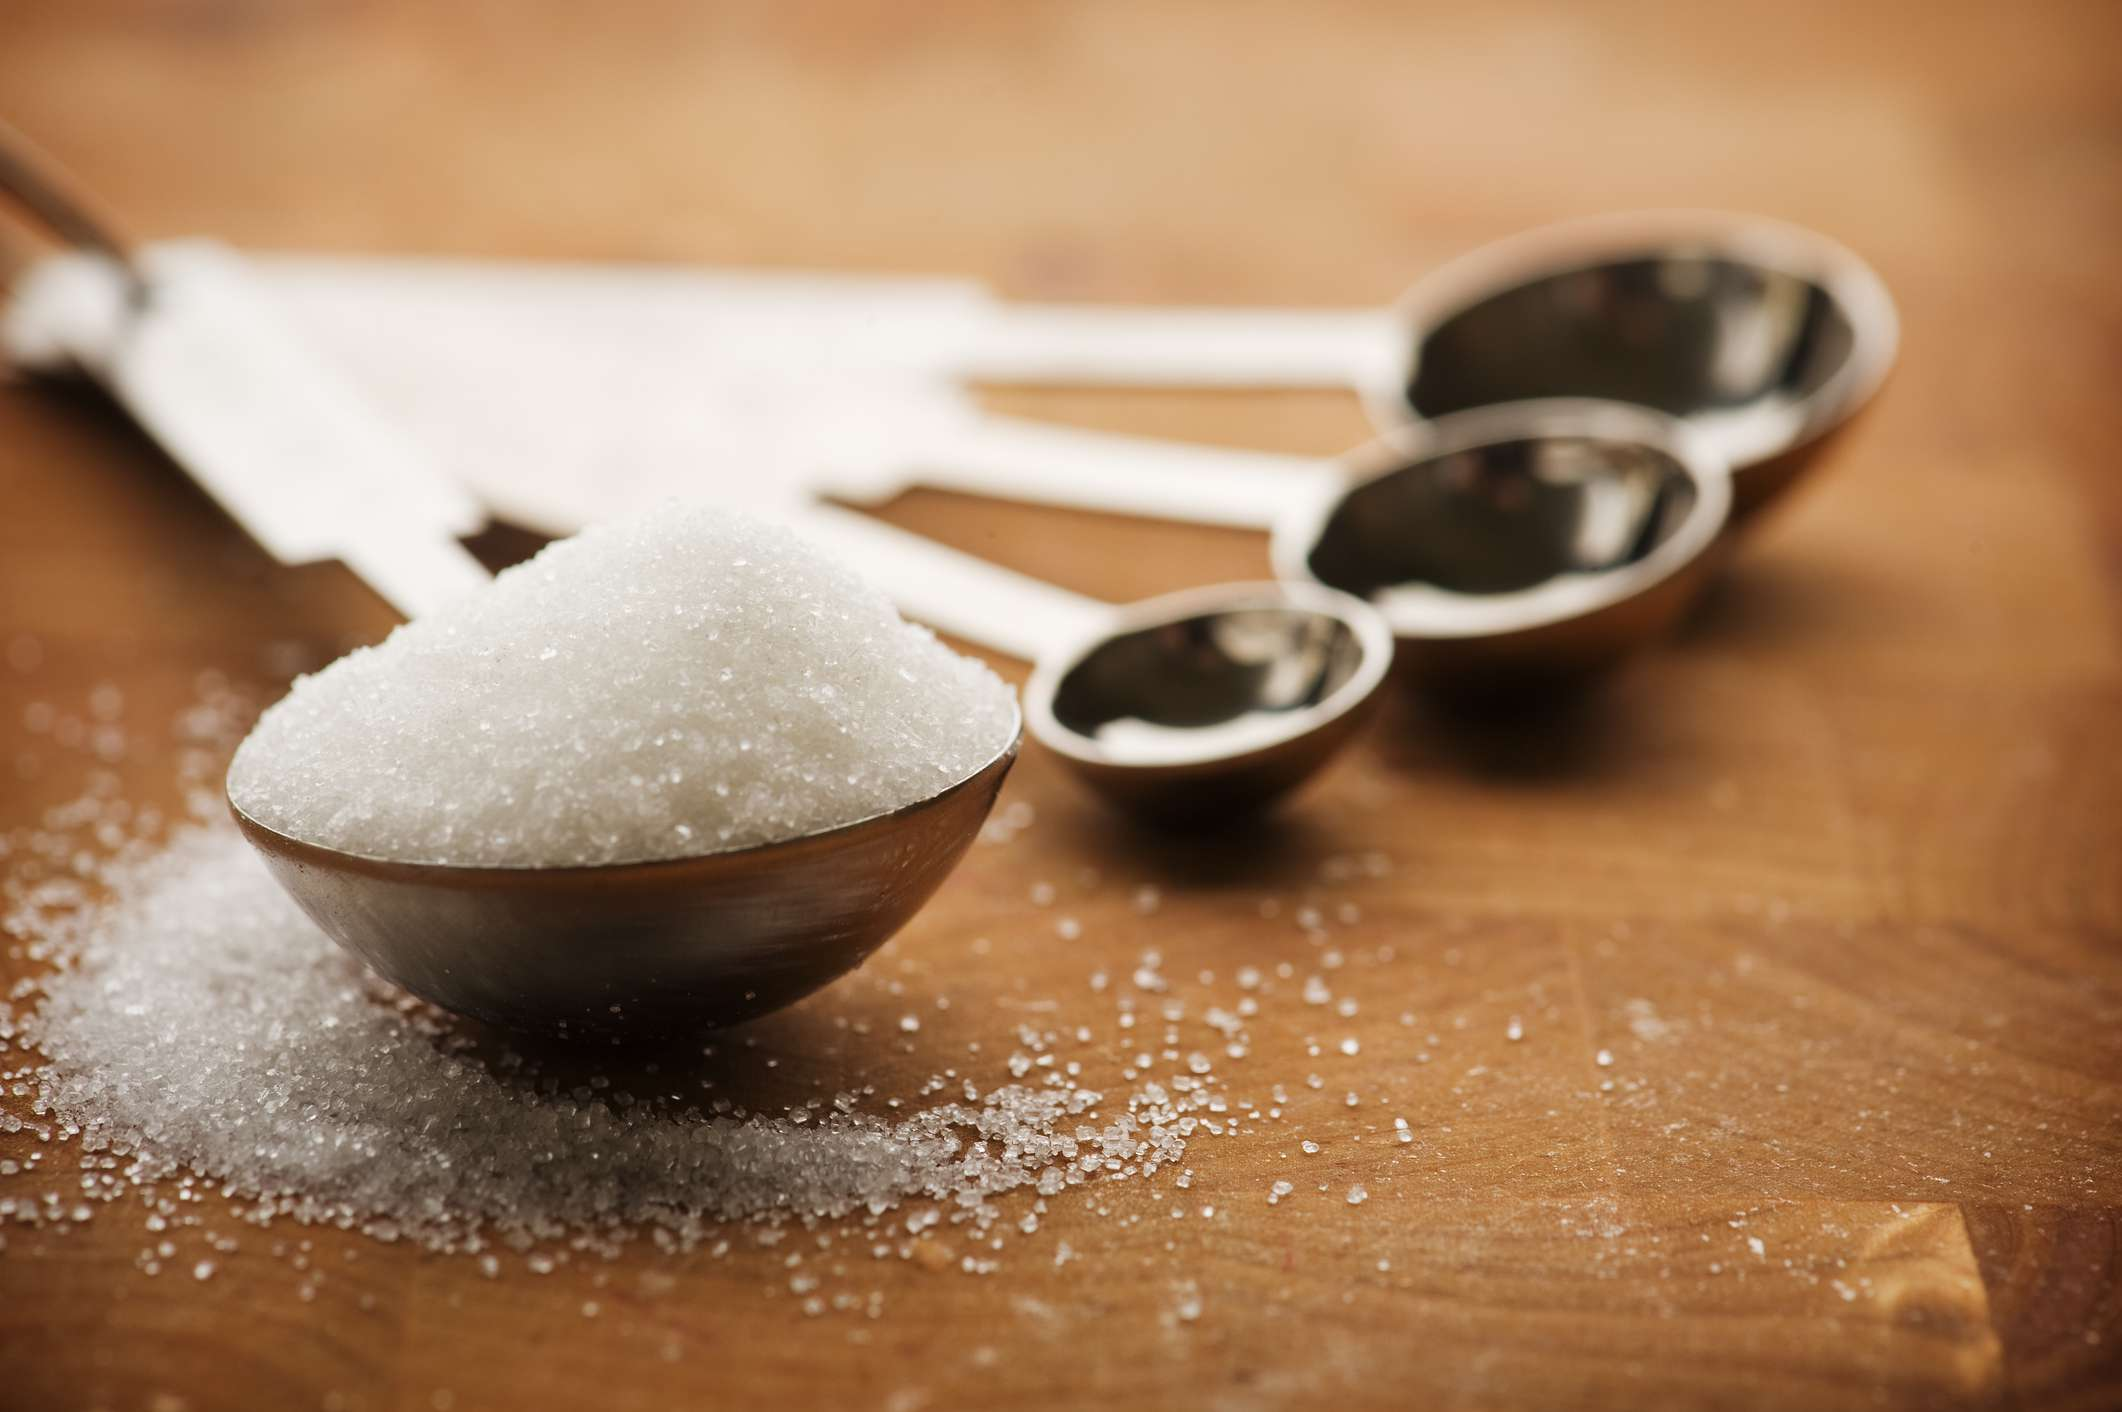 Sugar in a measuring spoon on a wood surface.